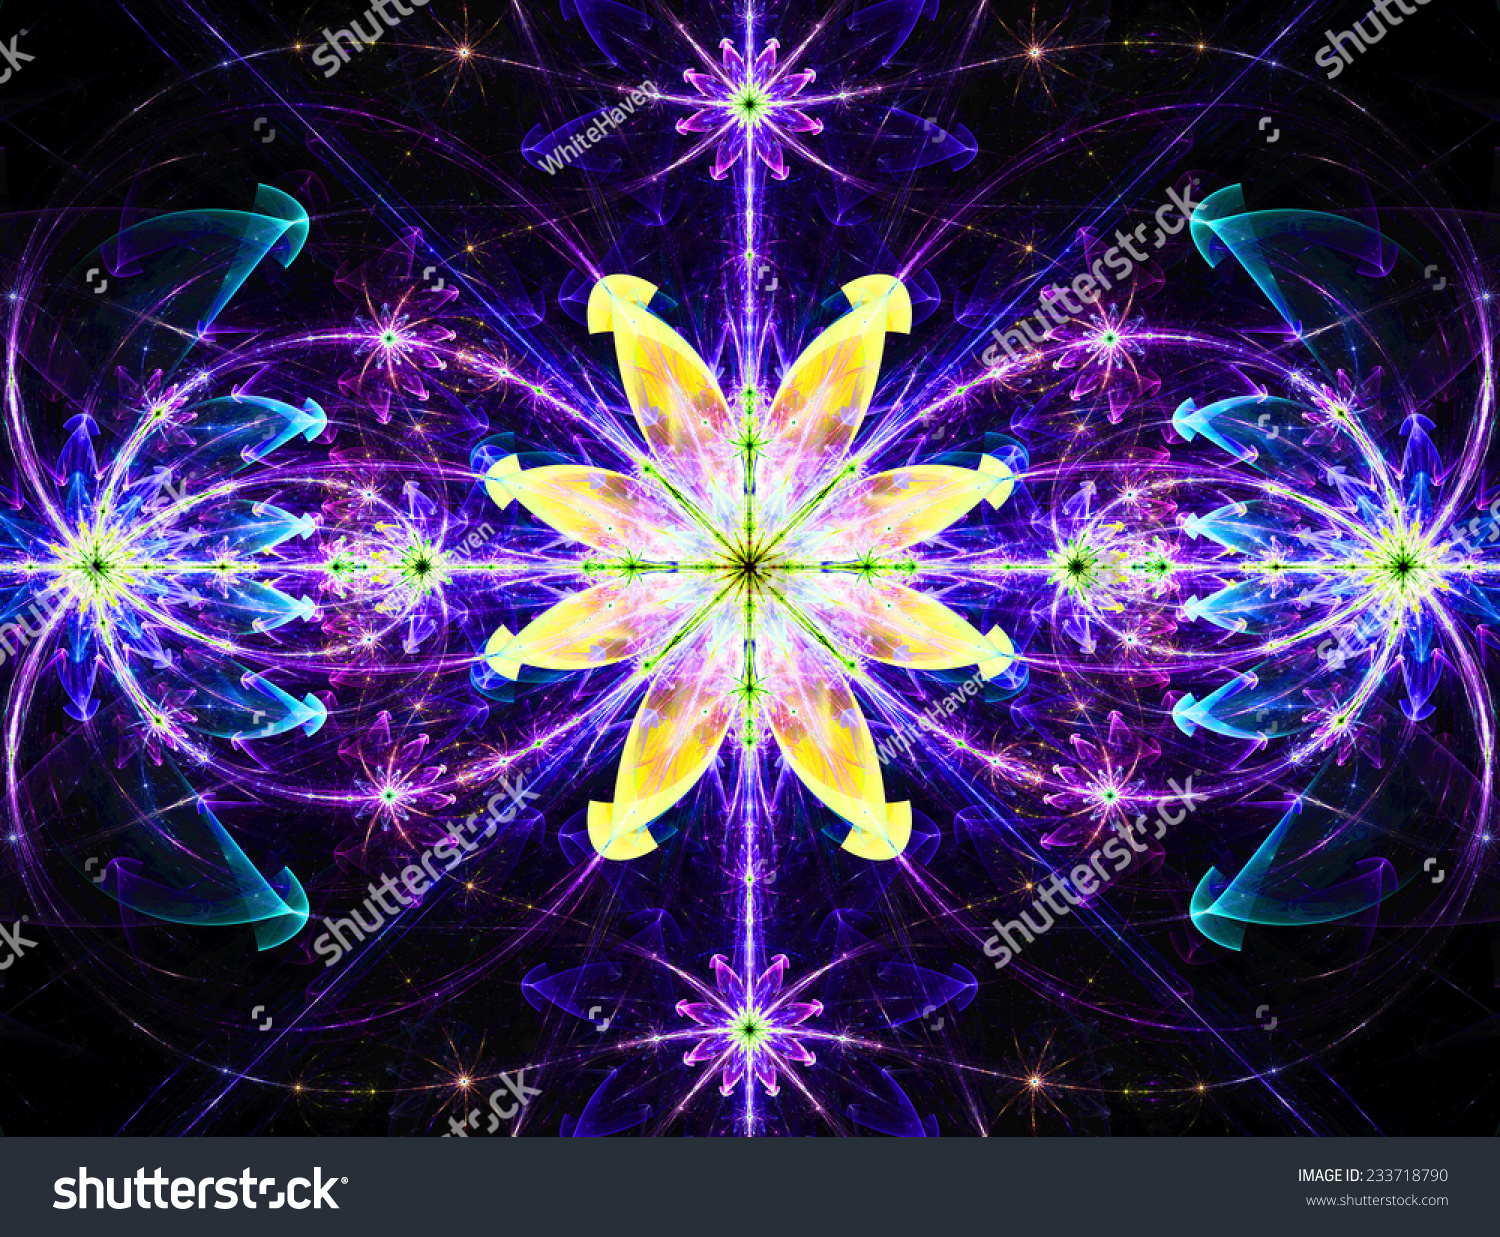 Glowing Pink And Purple Abstract High Resolution Wallpaper With A Detailed Modern Exotic Vivid Shining Flower In The Center Pattern